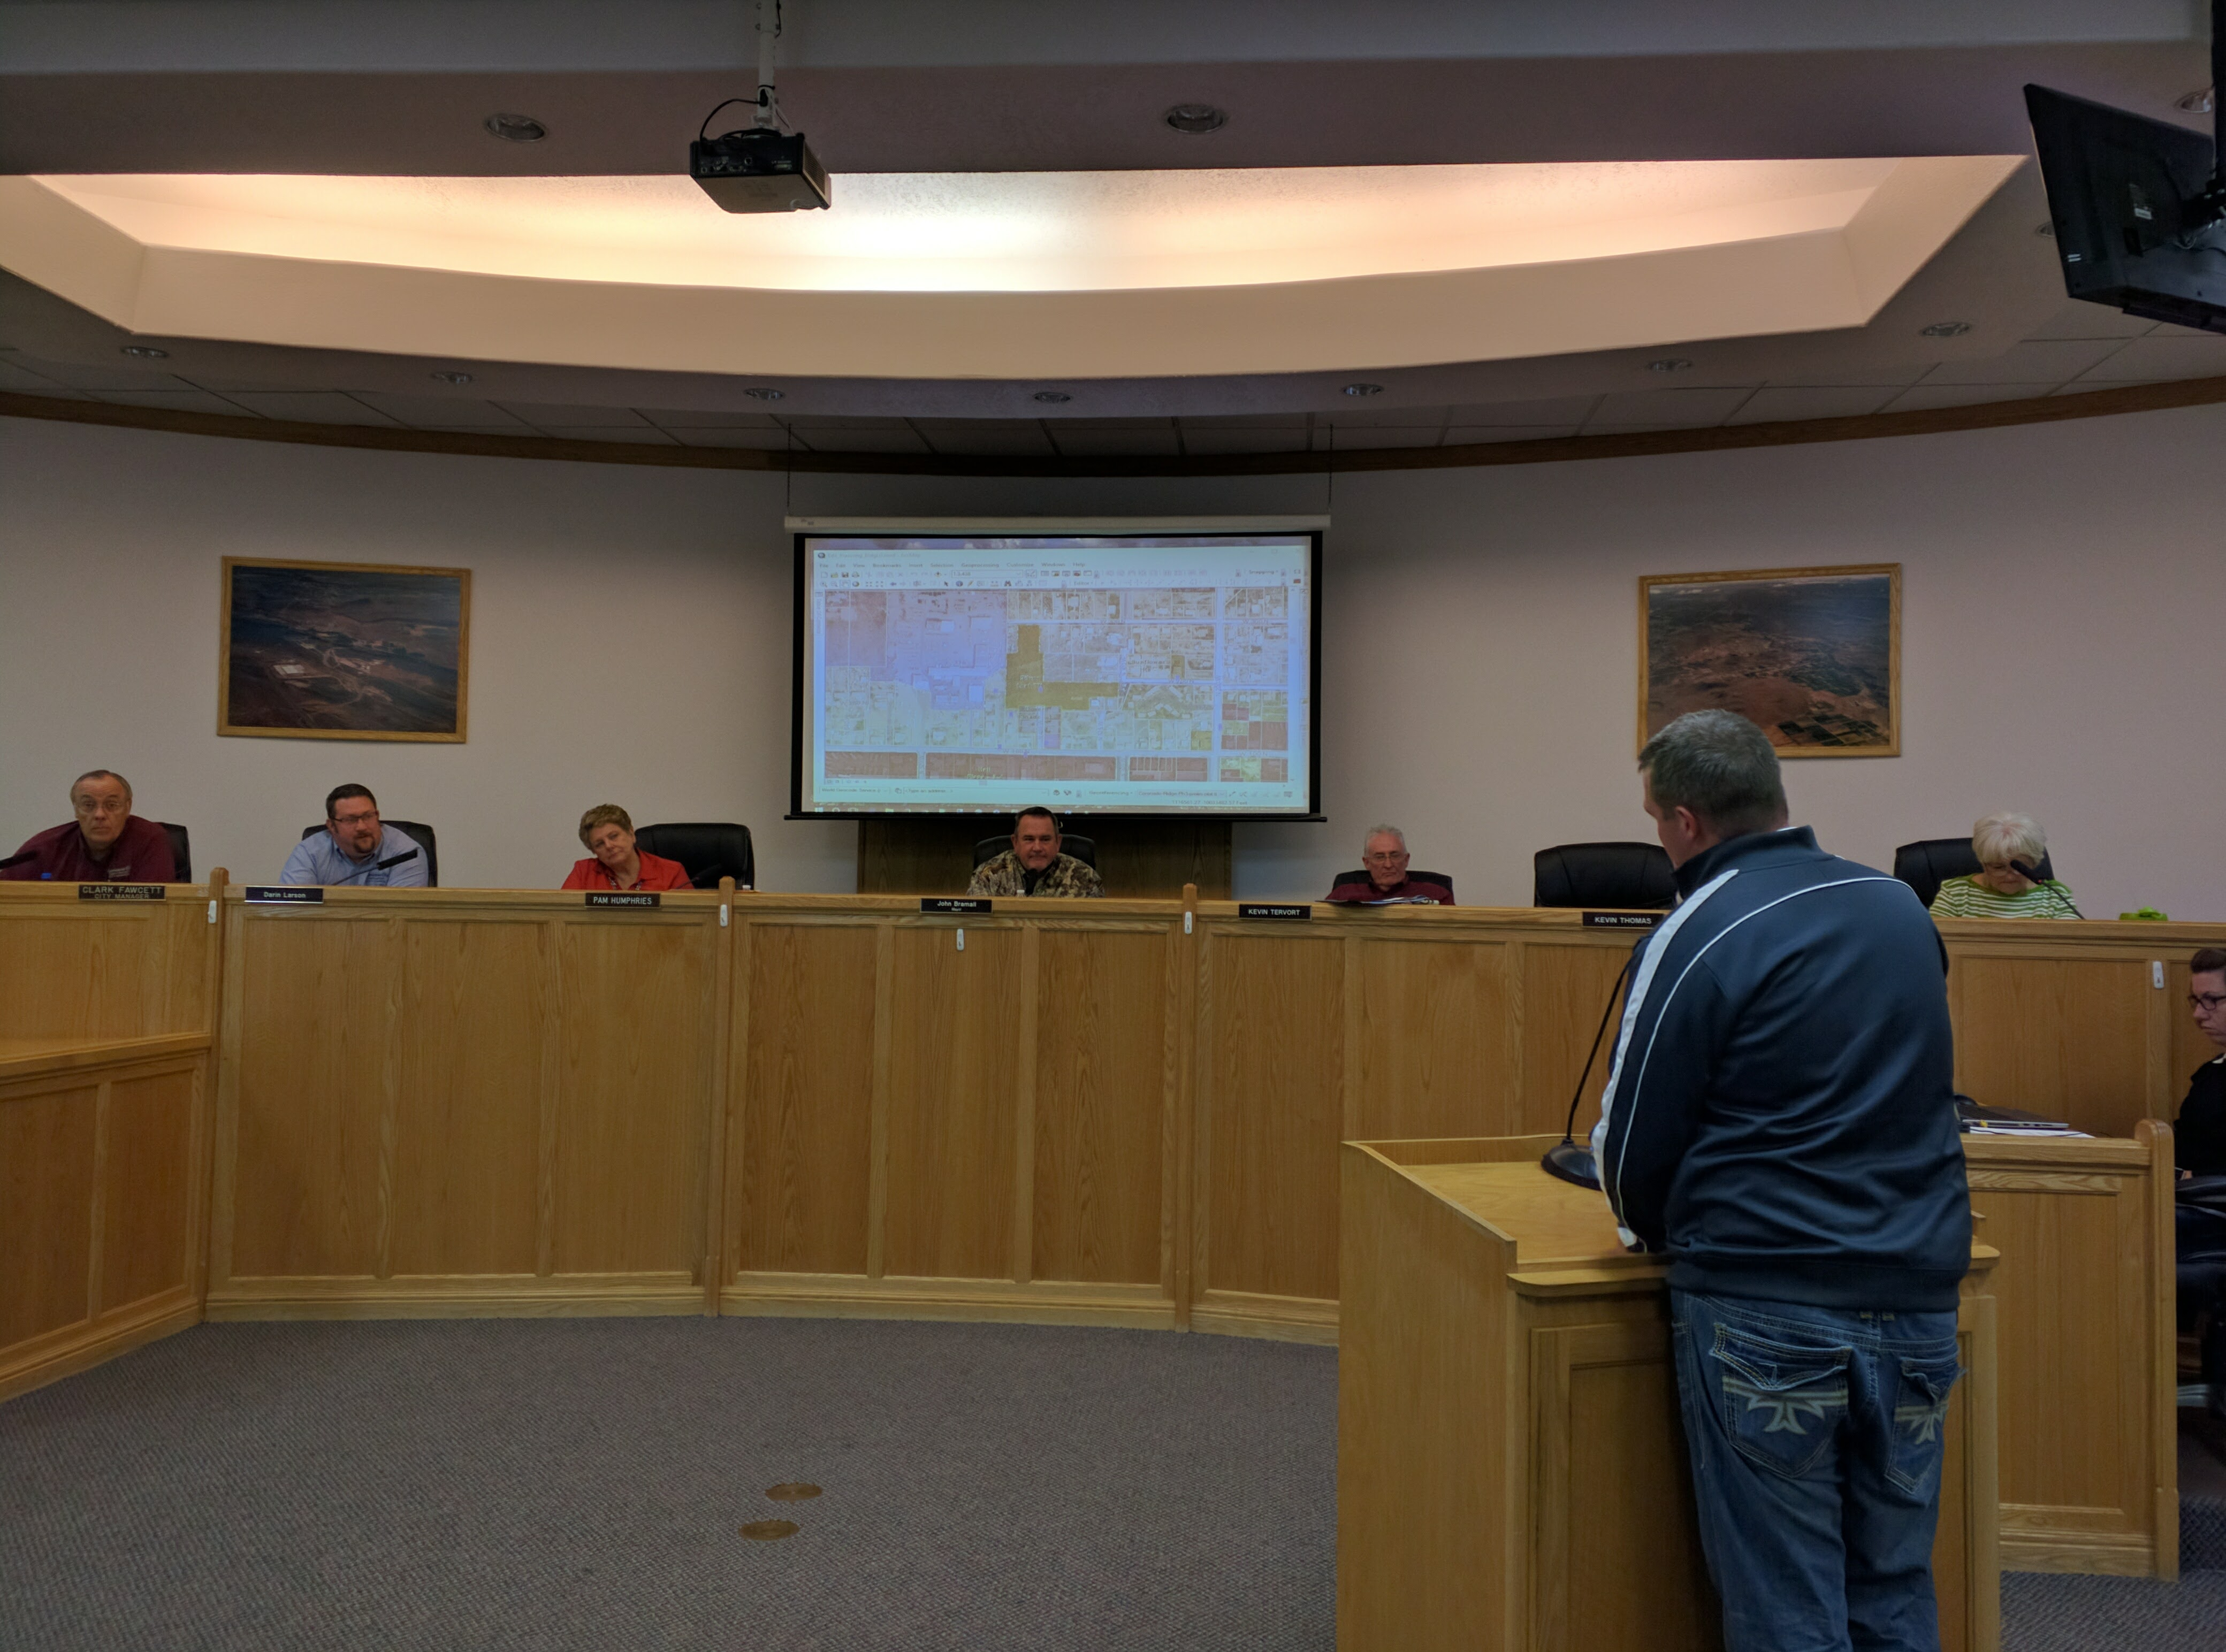 Leisure Services Director Bryce King presents on the state of recreation in Hurricane for the City Council, Hurricane, Utah, Oct. 20, 2016 | Photo by Joseph Witham, St. George News